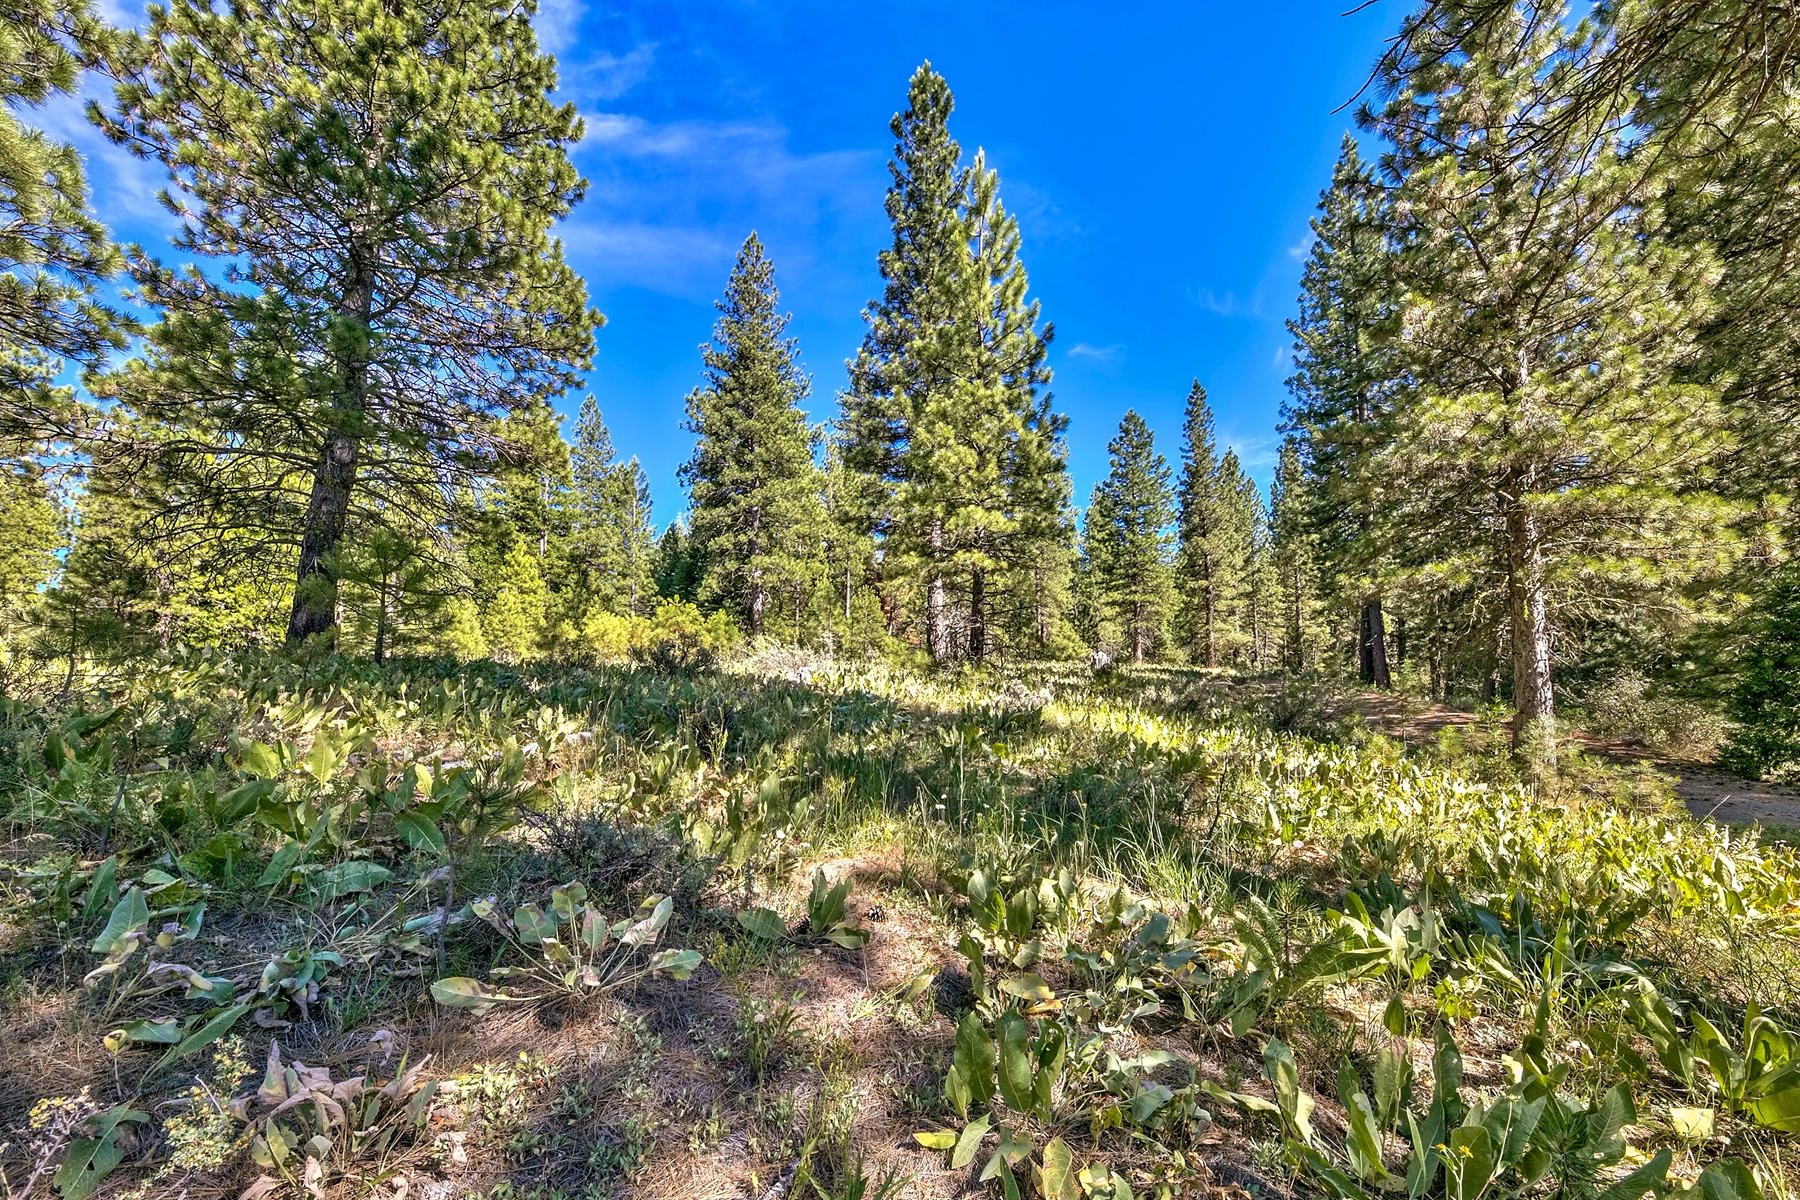 Additional photo for property listing at 483 Smith Creek Road, Graeagle, CA 96103 483 Smith Creek Road Graeagle, California 96103 United States